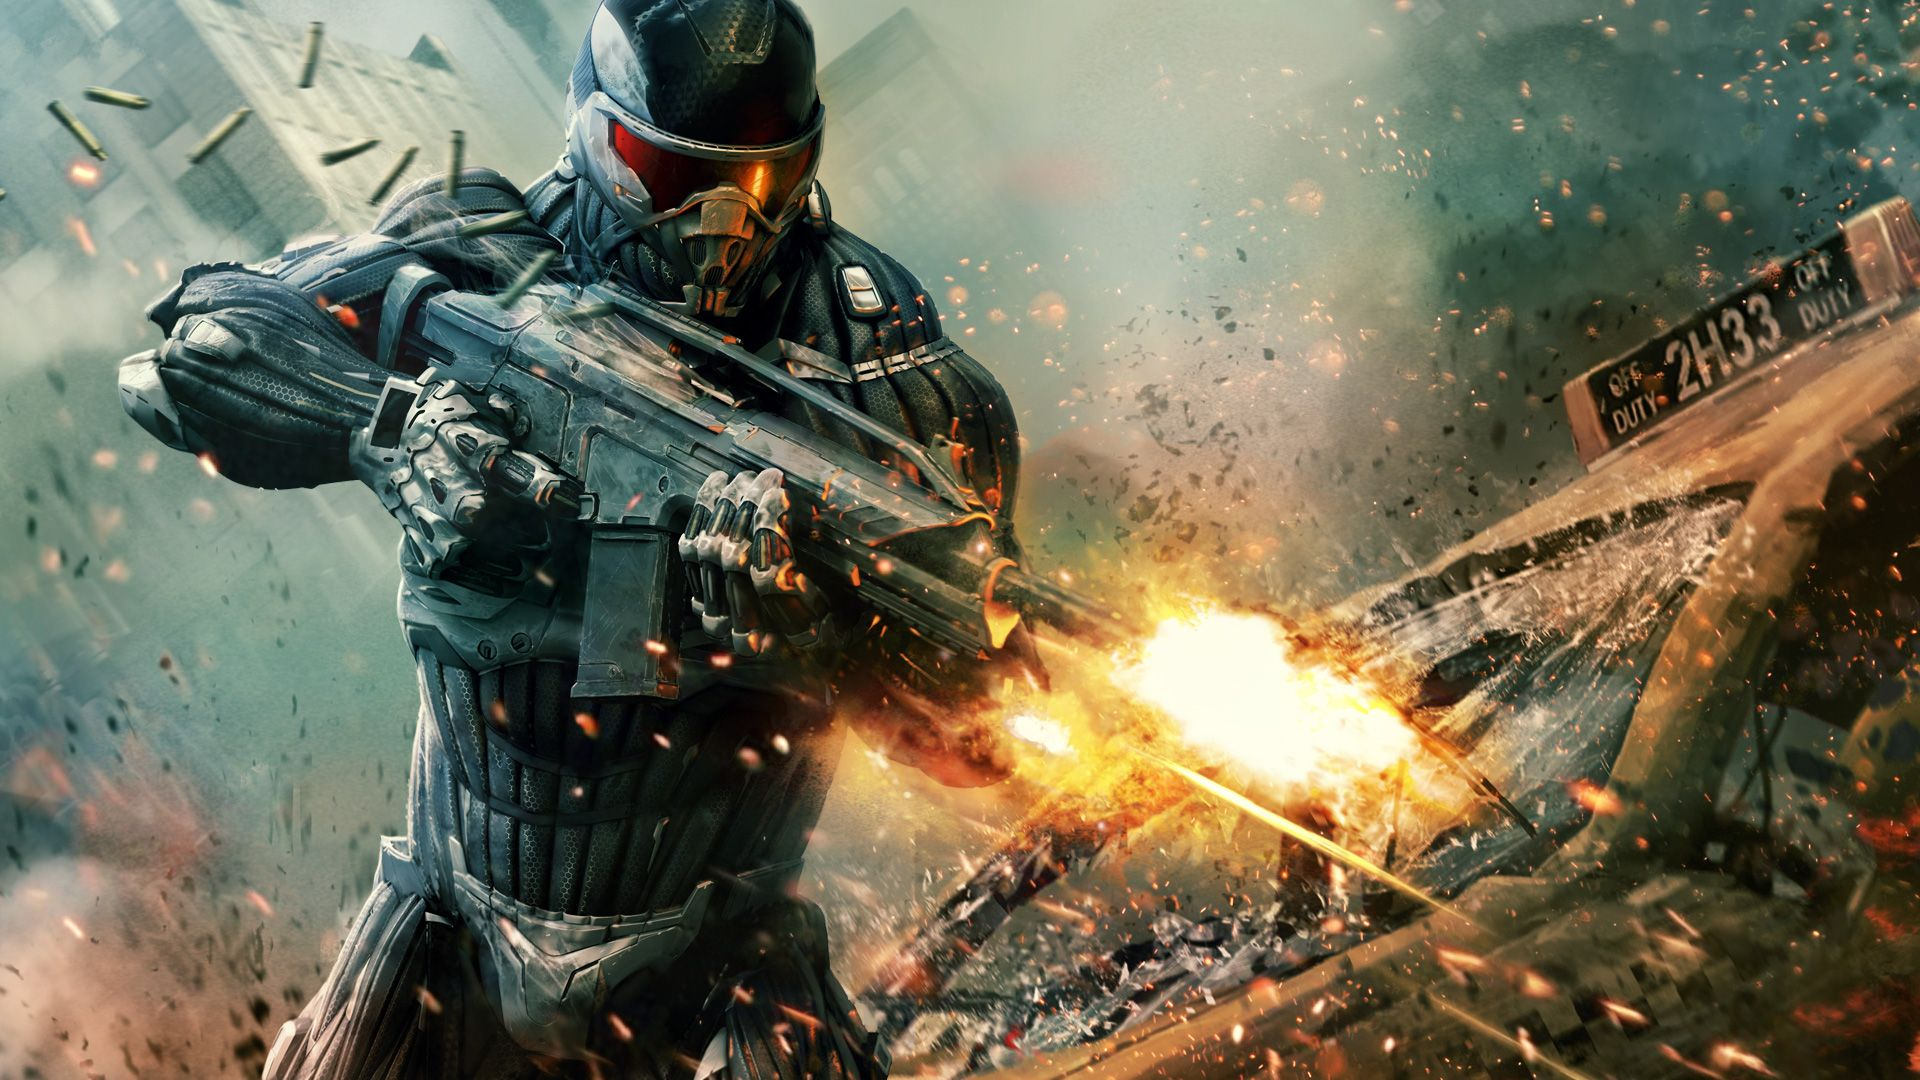 Crysis HD Wallpapers and Backgrounds 1920×1080 Crysis